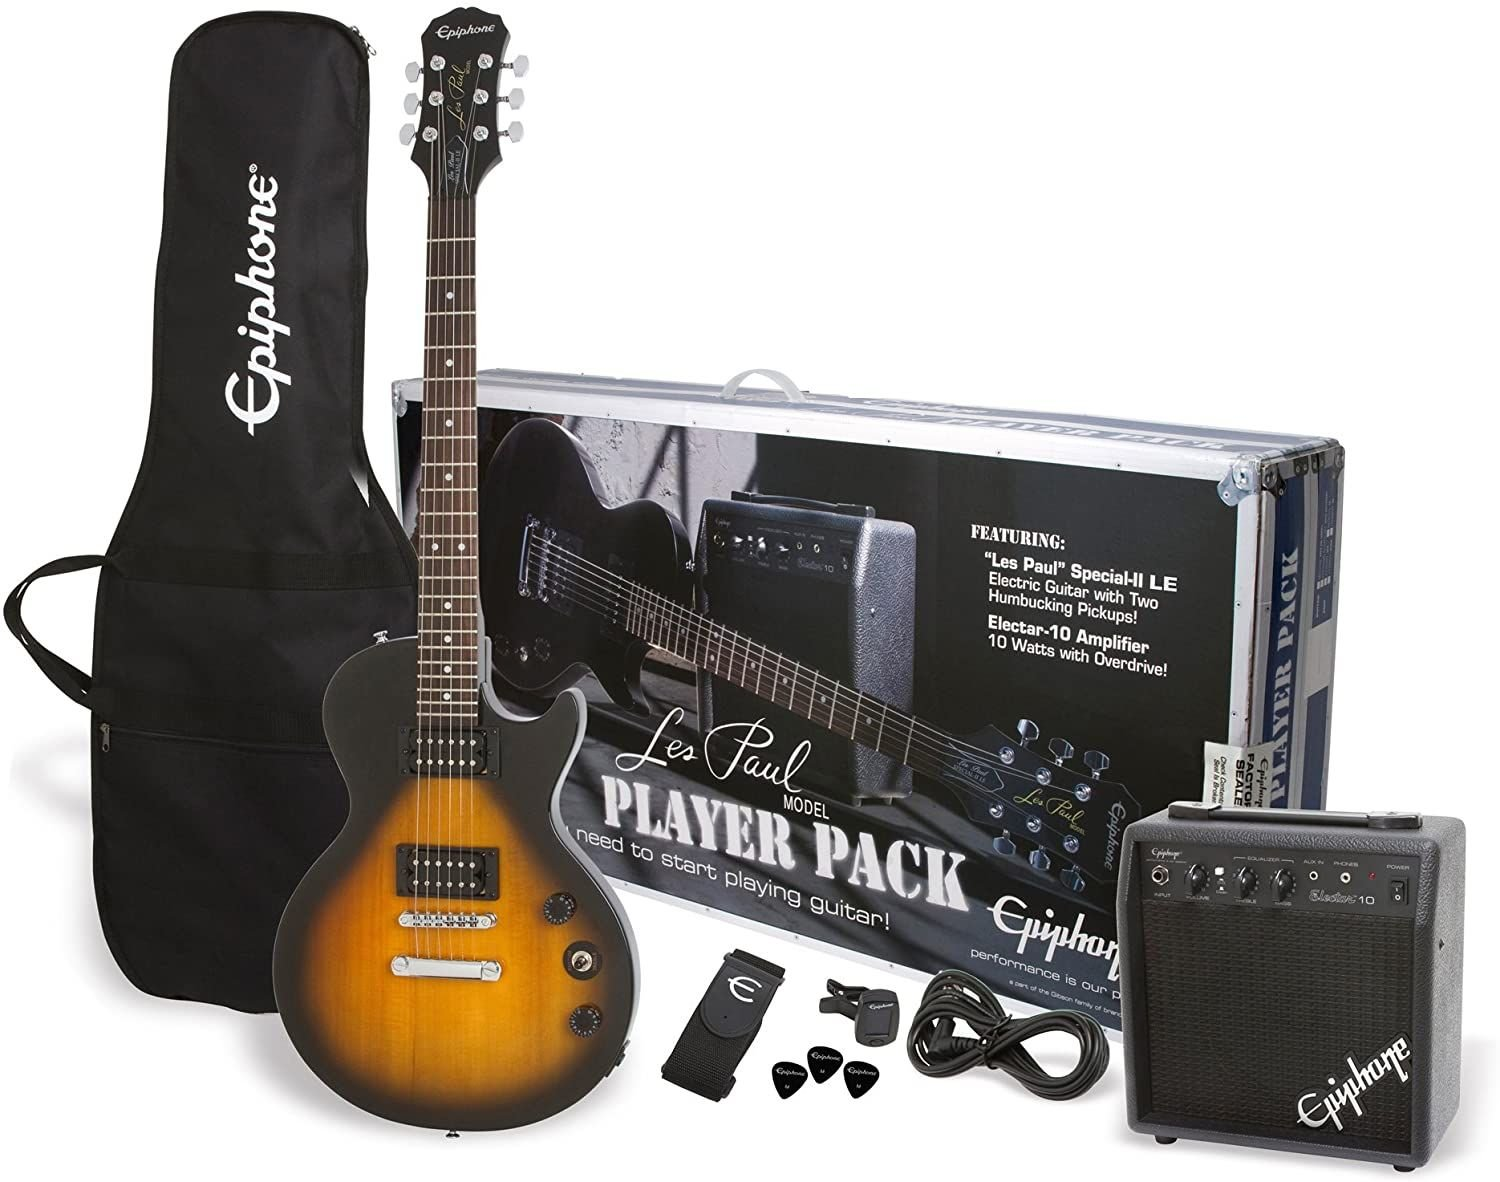 Epiphone Les Paul electric guitar player pack Vintage Sunburst